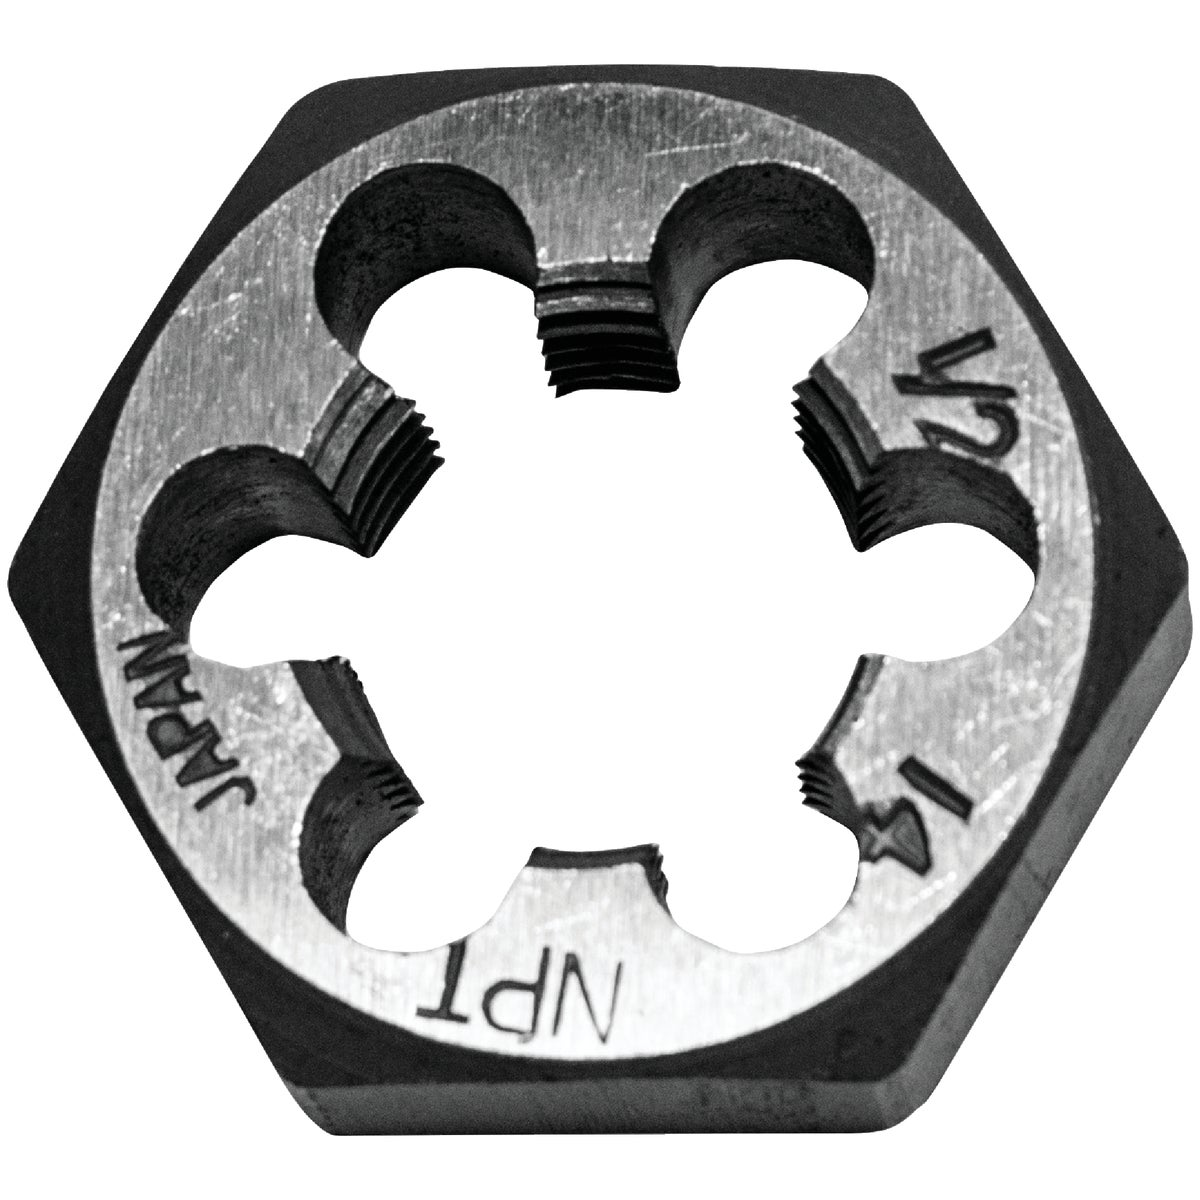 1/2X14 HEXAGON PIPE DIE - 7005 by Irwin Industr Tool